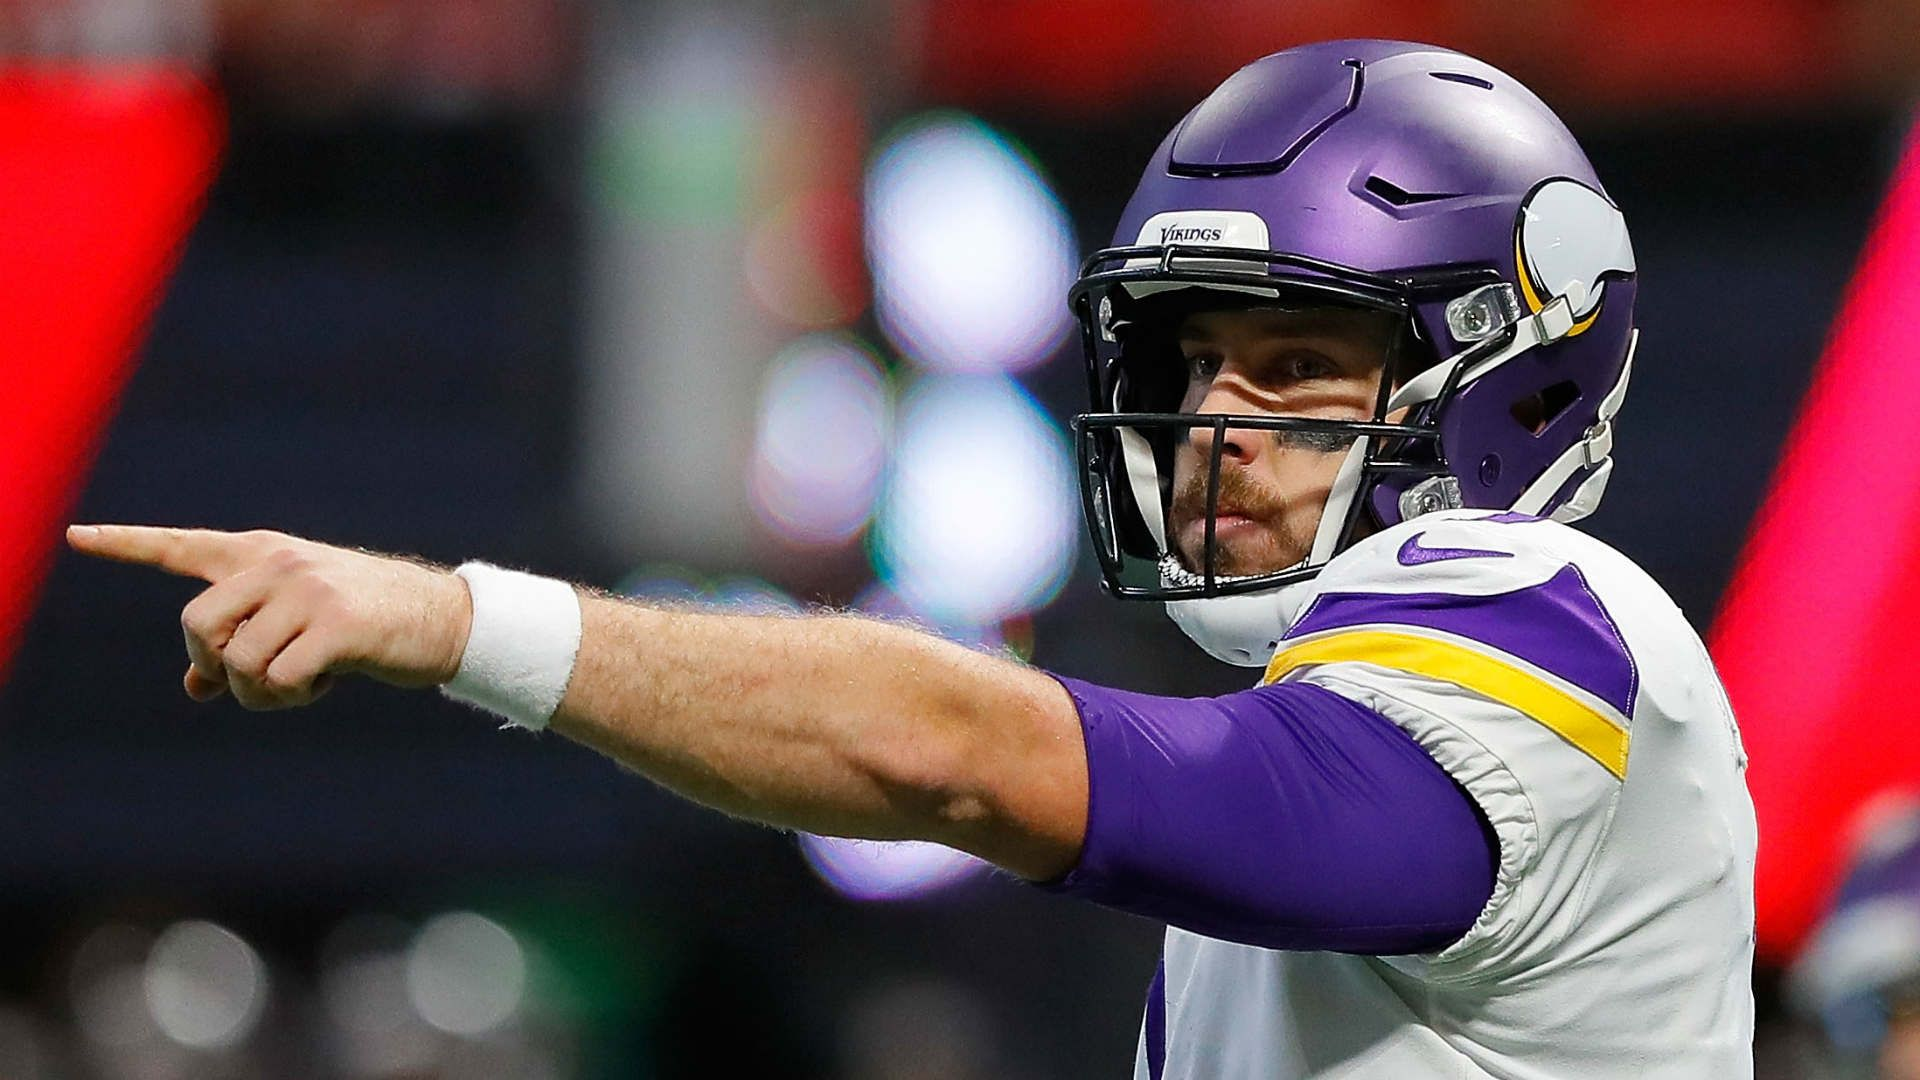 Three takeaways from Vikings' win over Falcons   NFL   Sporting News